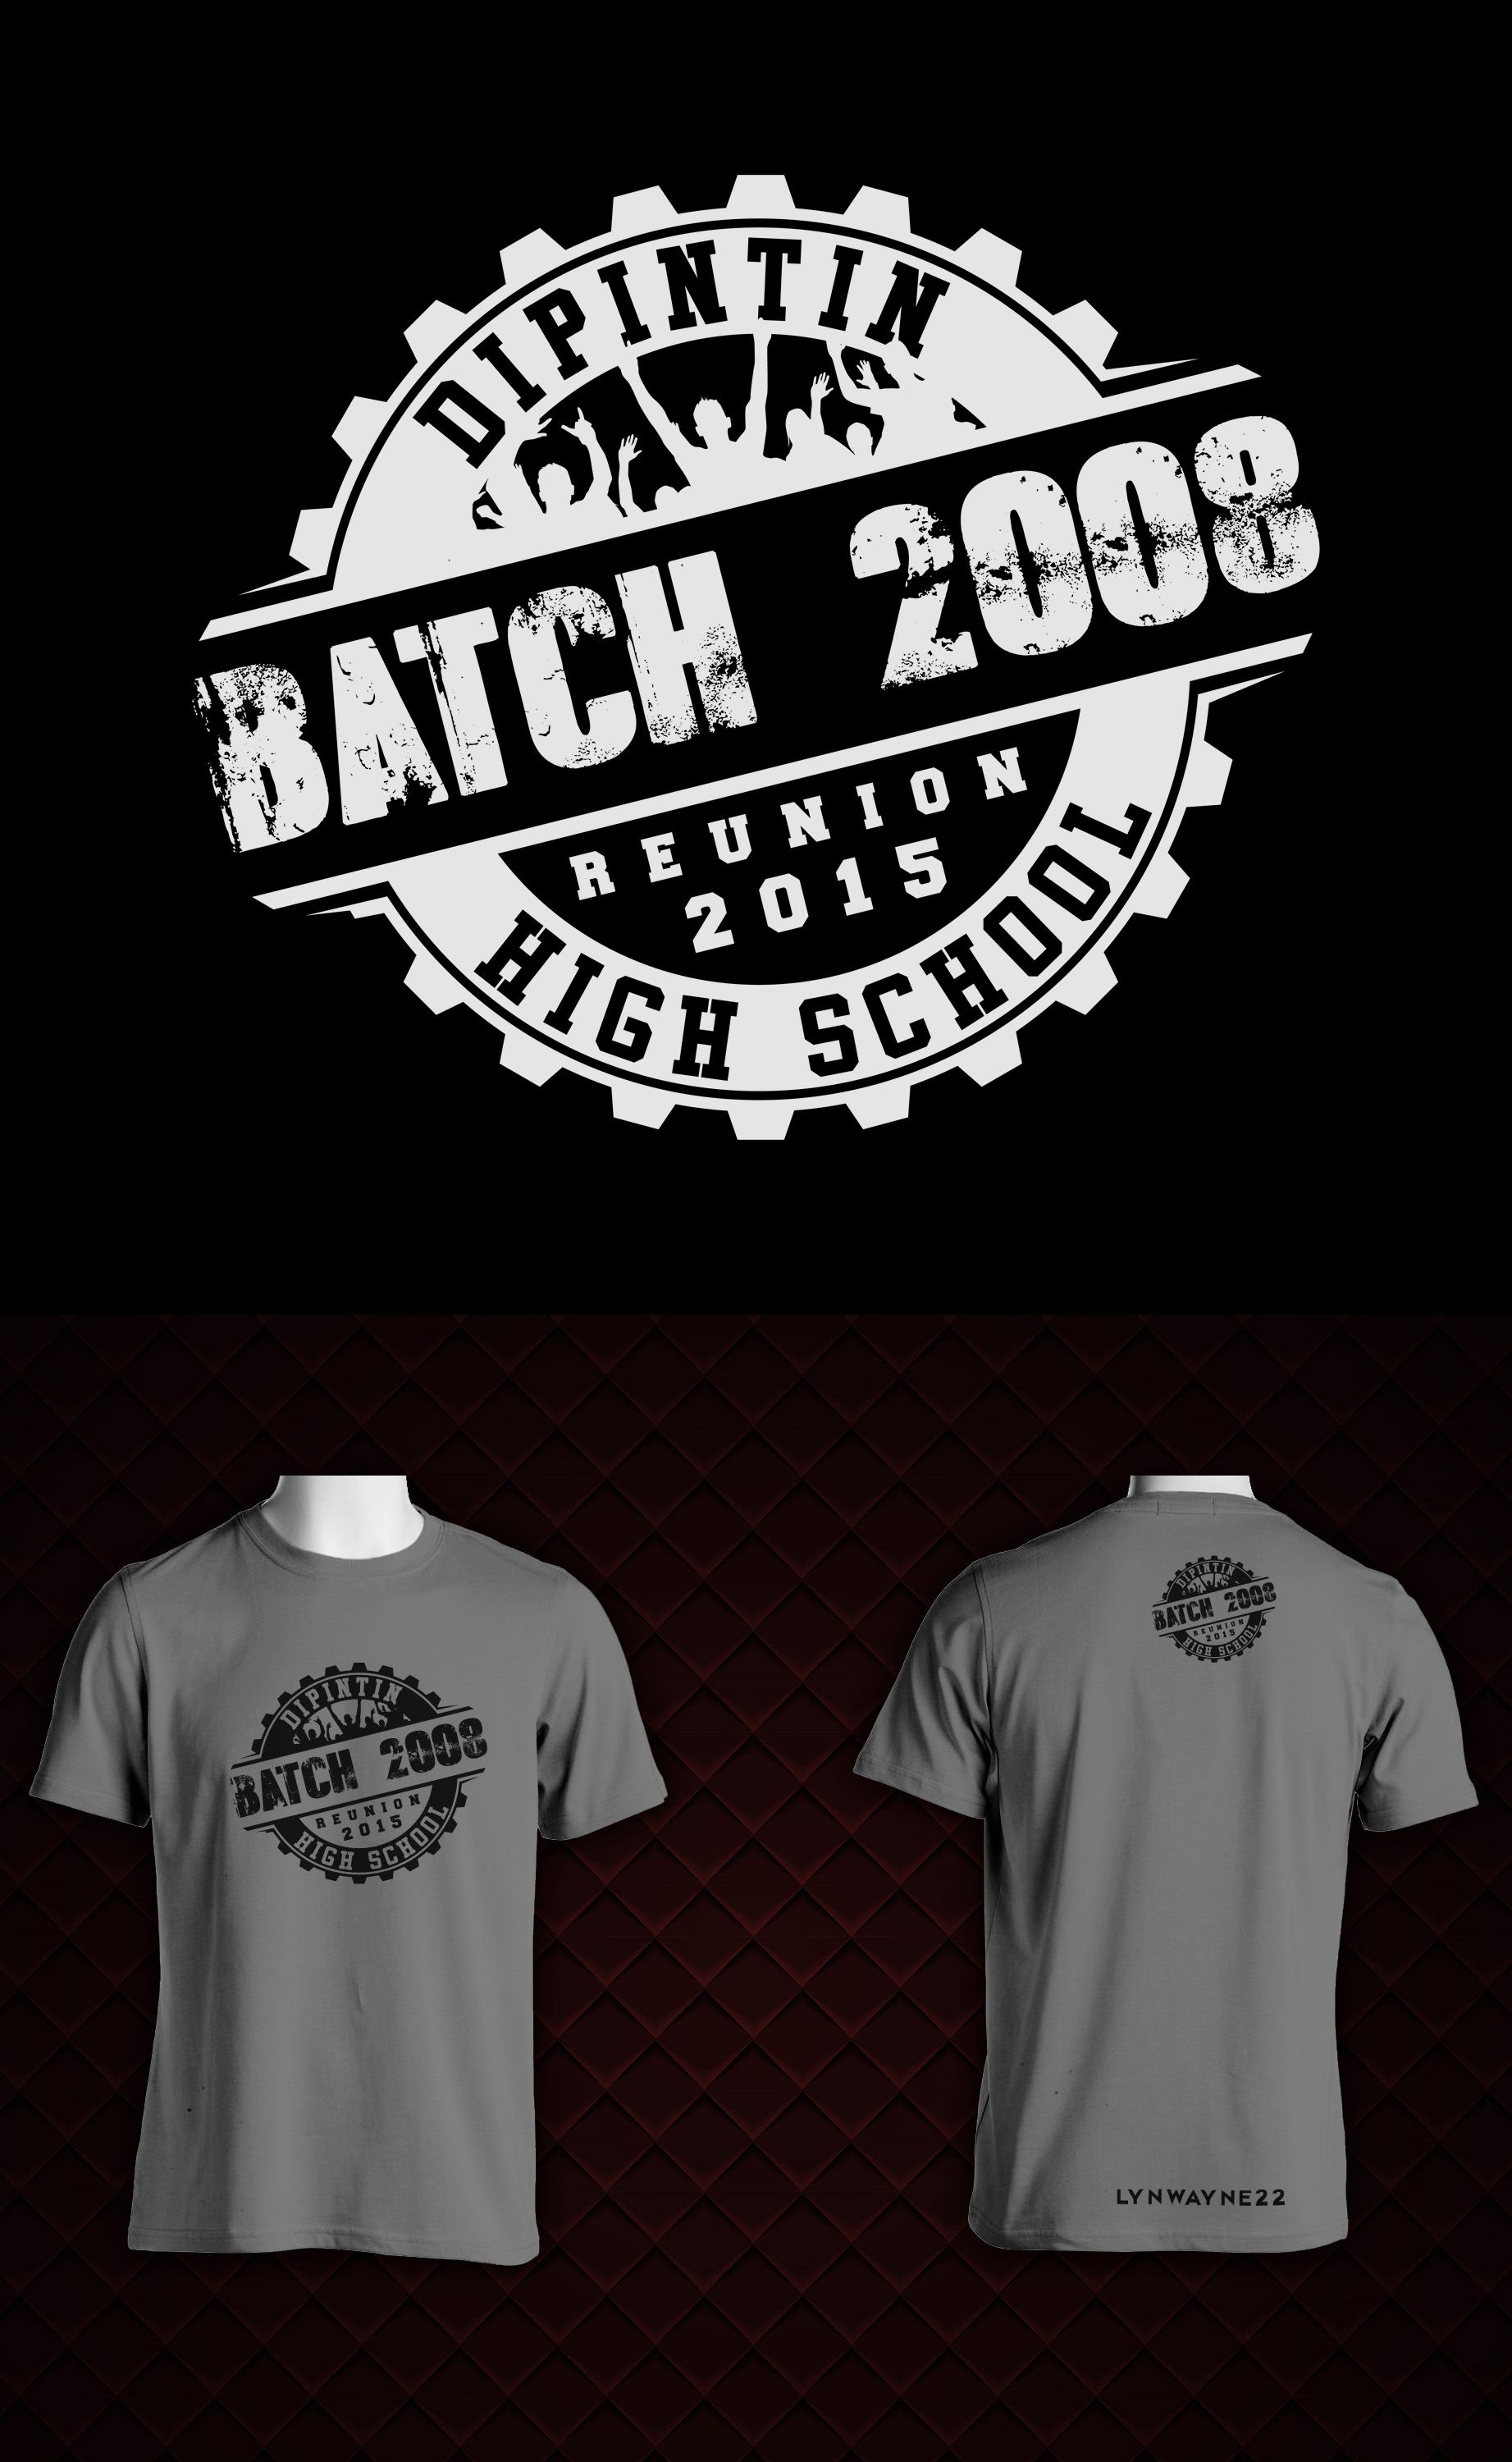 The Design Is About Our High School Class Batch Reunion This Coming